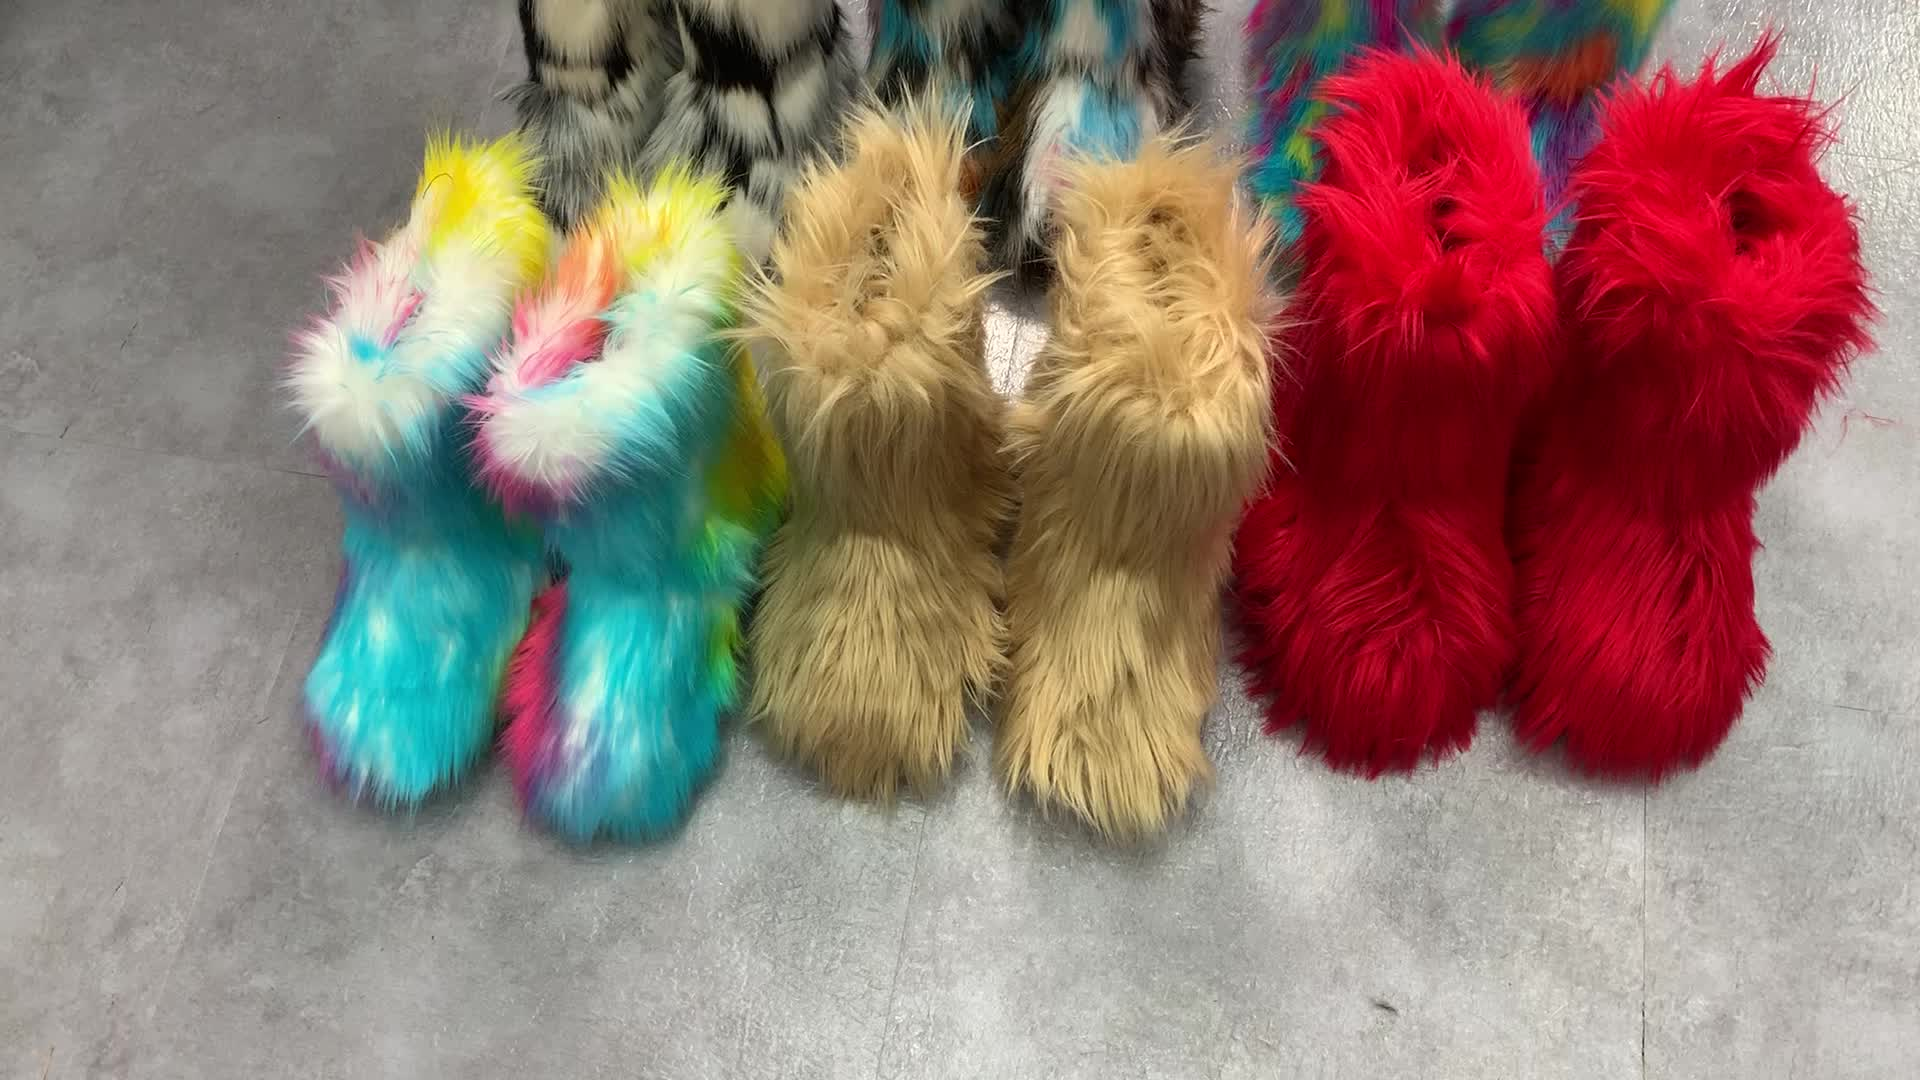 wholesale women real faux fluffy fur boots ladies high winter warm snow boots colorful plush casual winter shoes